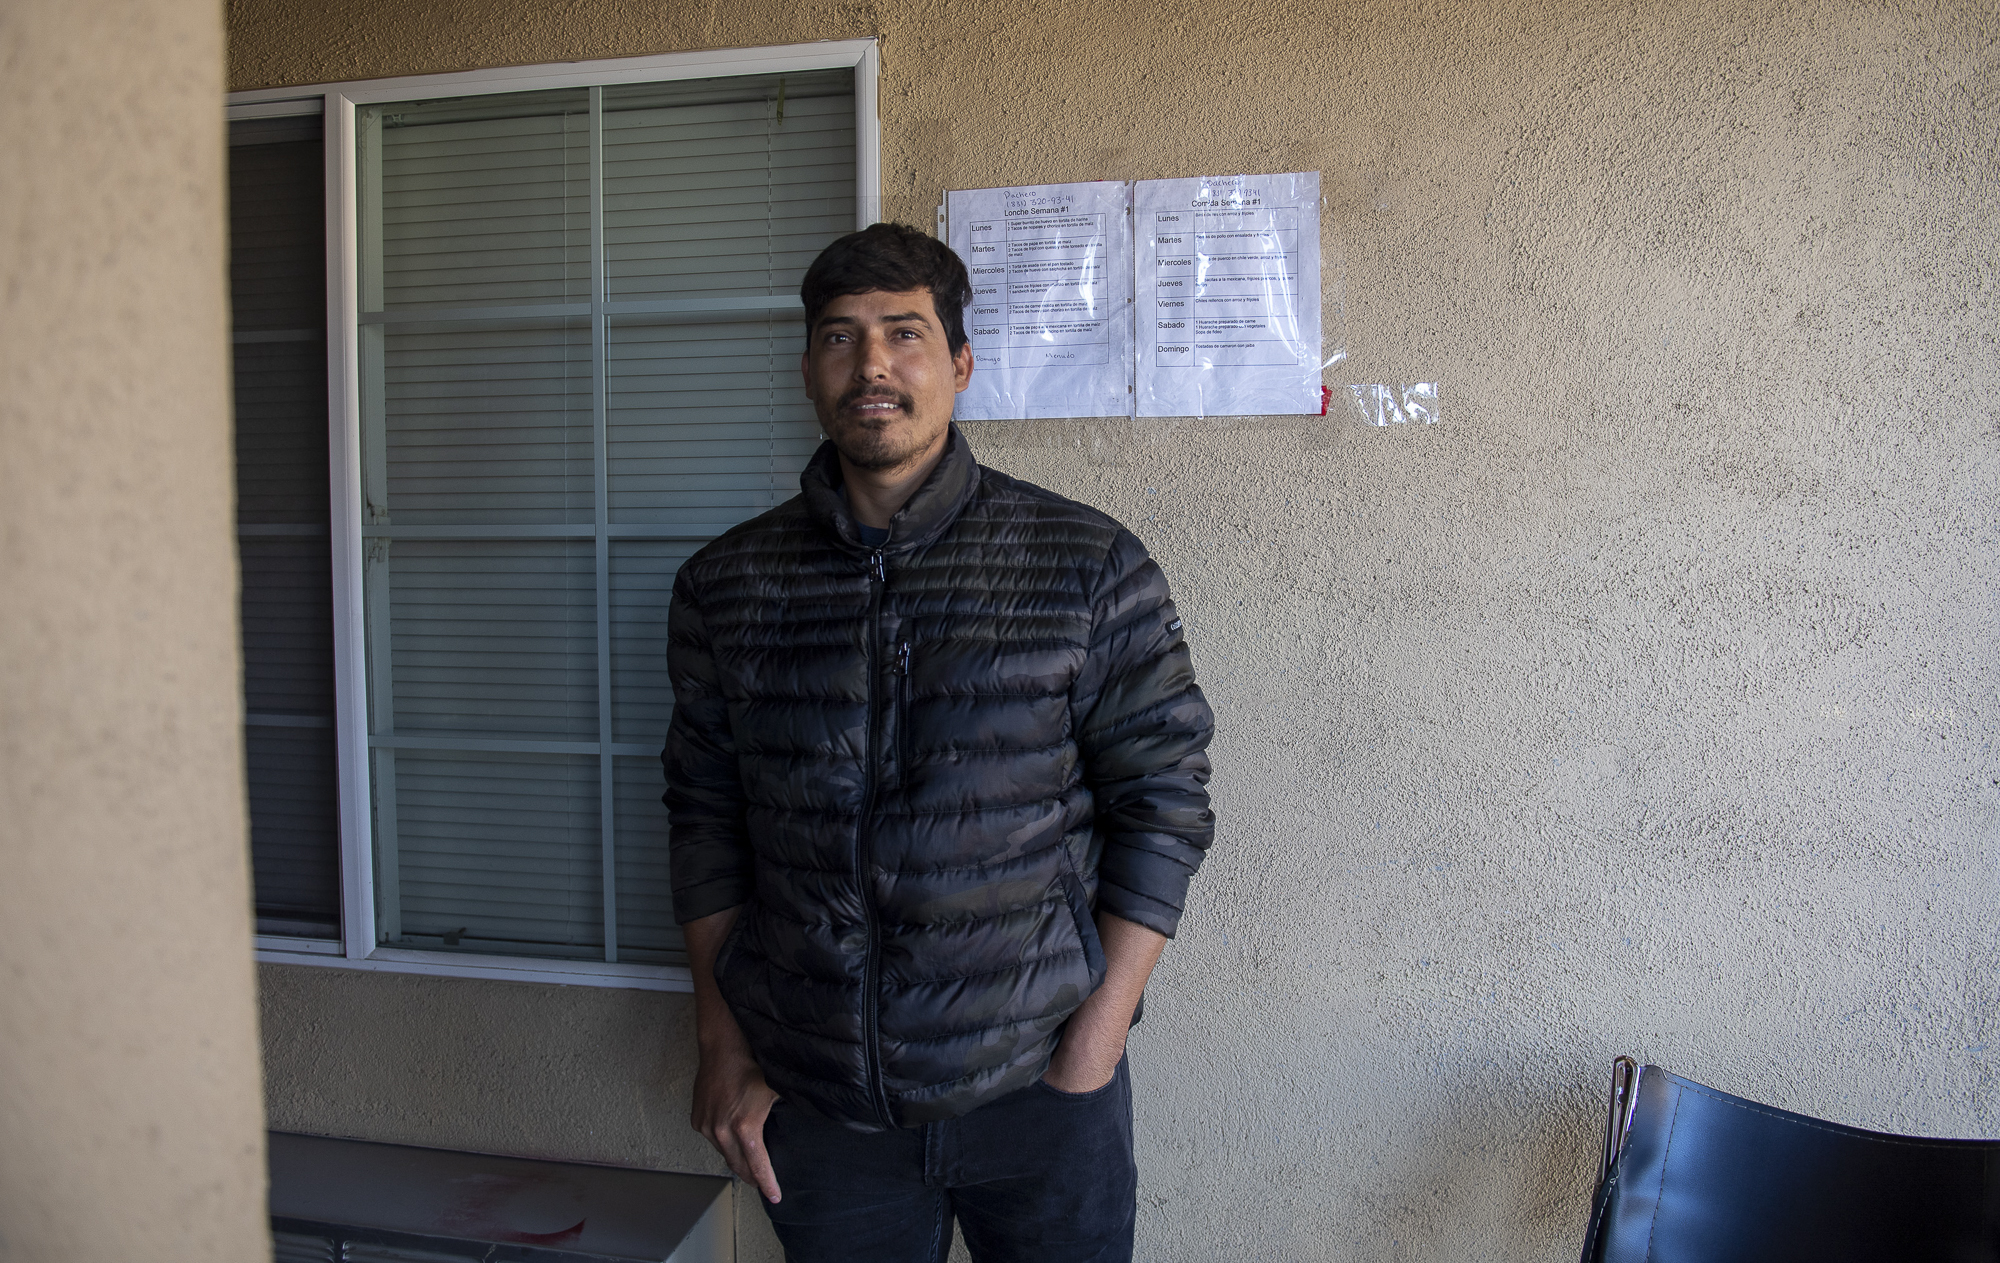 An H2A worker is photographed just right outside of their room located in the Budget Inn Motel in Salinas on April 2, 2020. Photo by David Rodriguez, The Salinas Californian